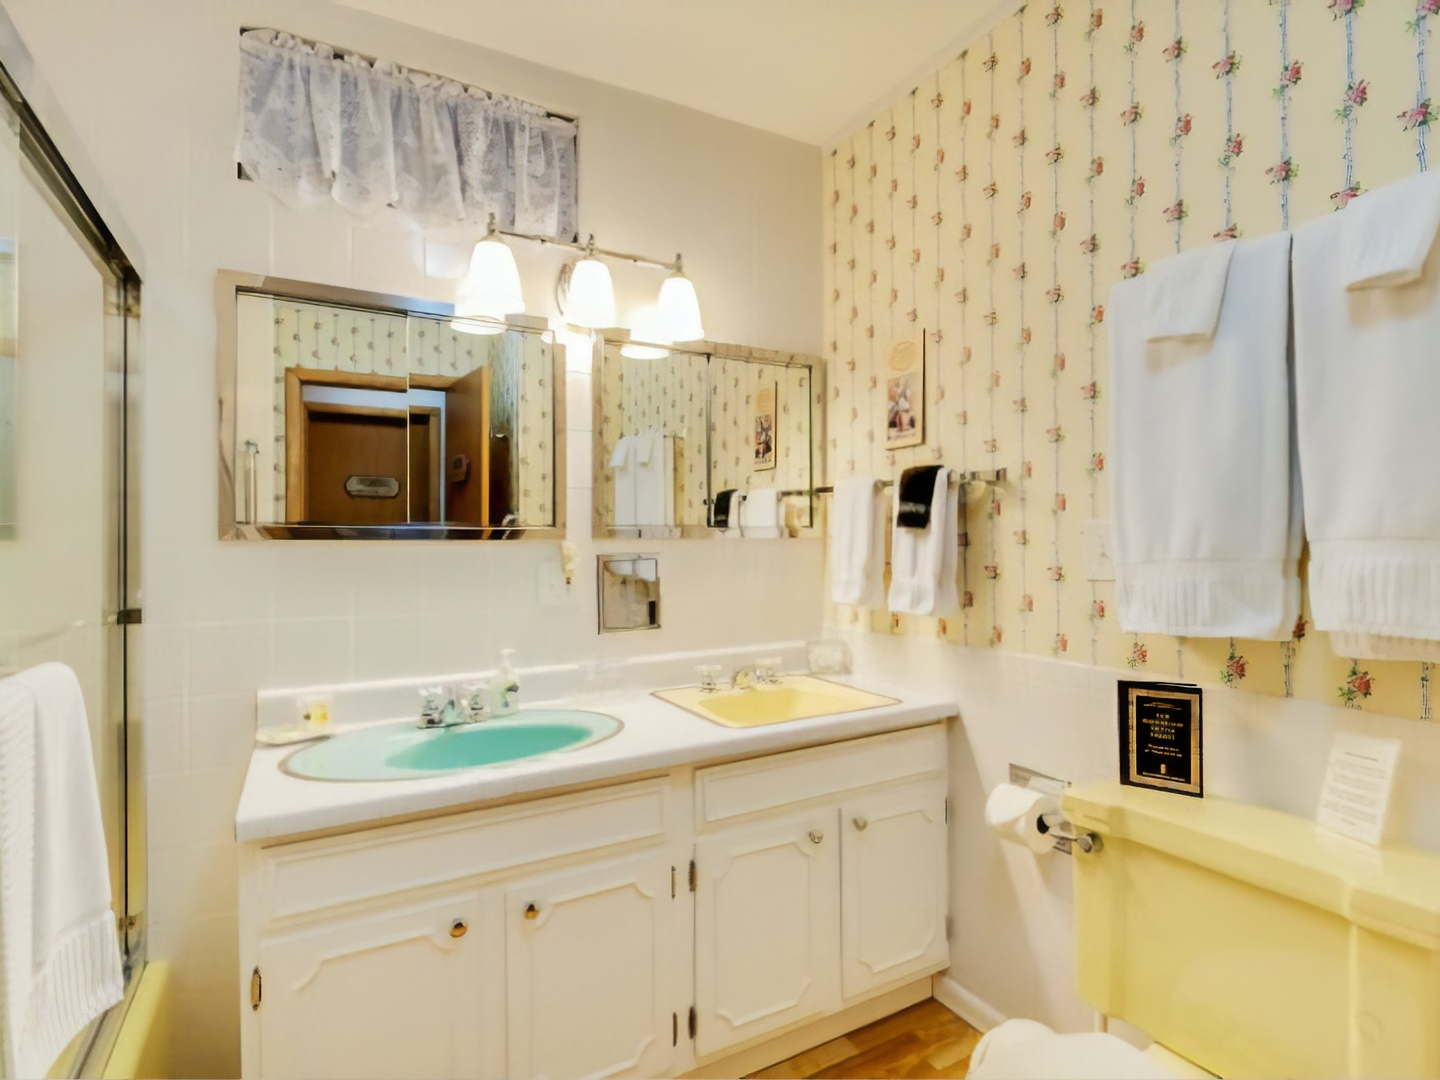 A kitchen with a sink and a mirror at Bowman's Oak Hill Bed and Breakfast.